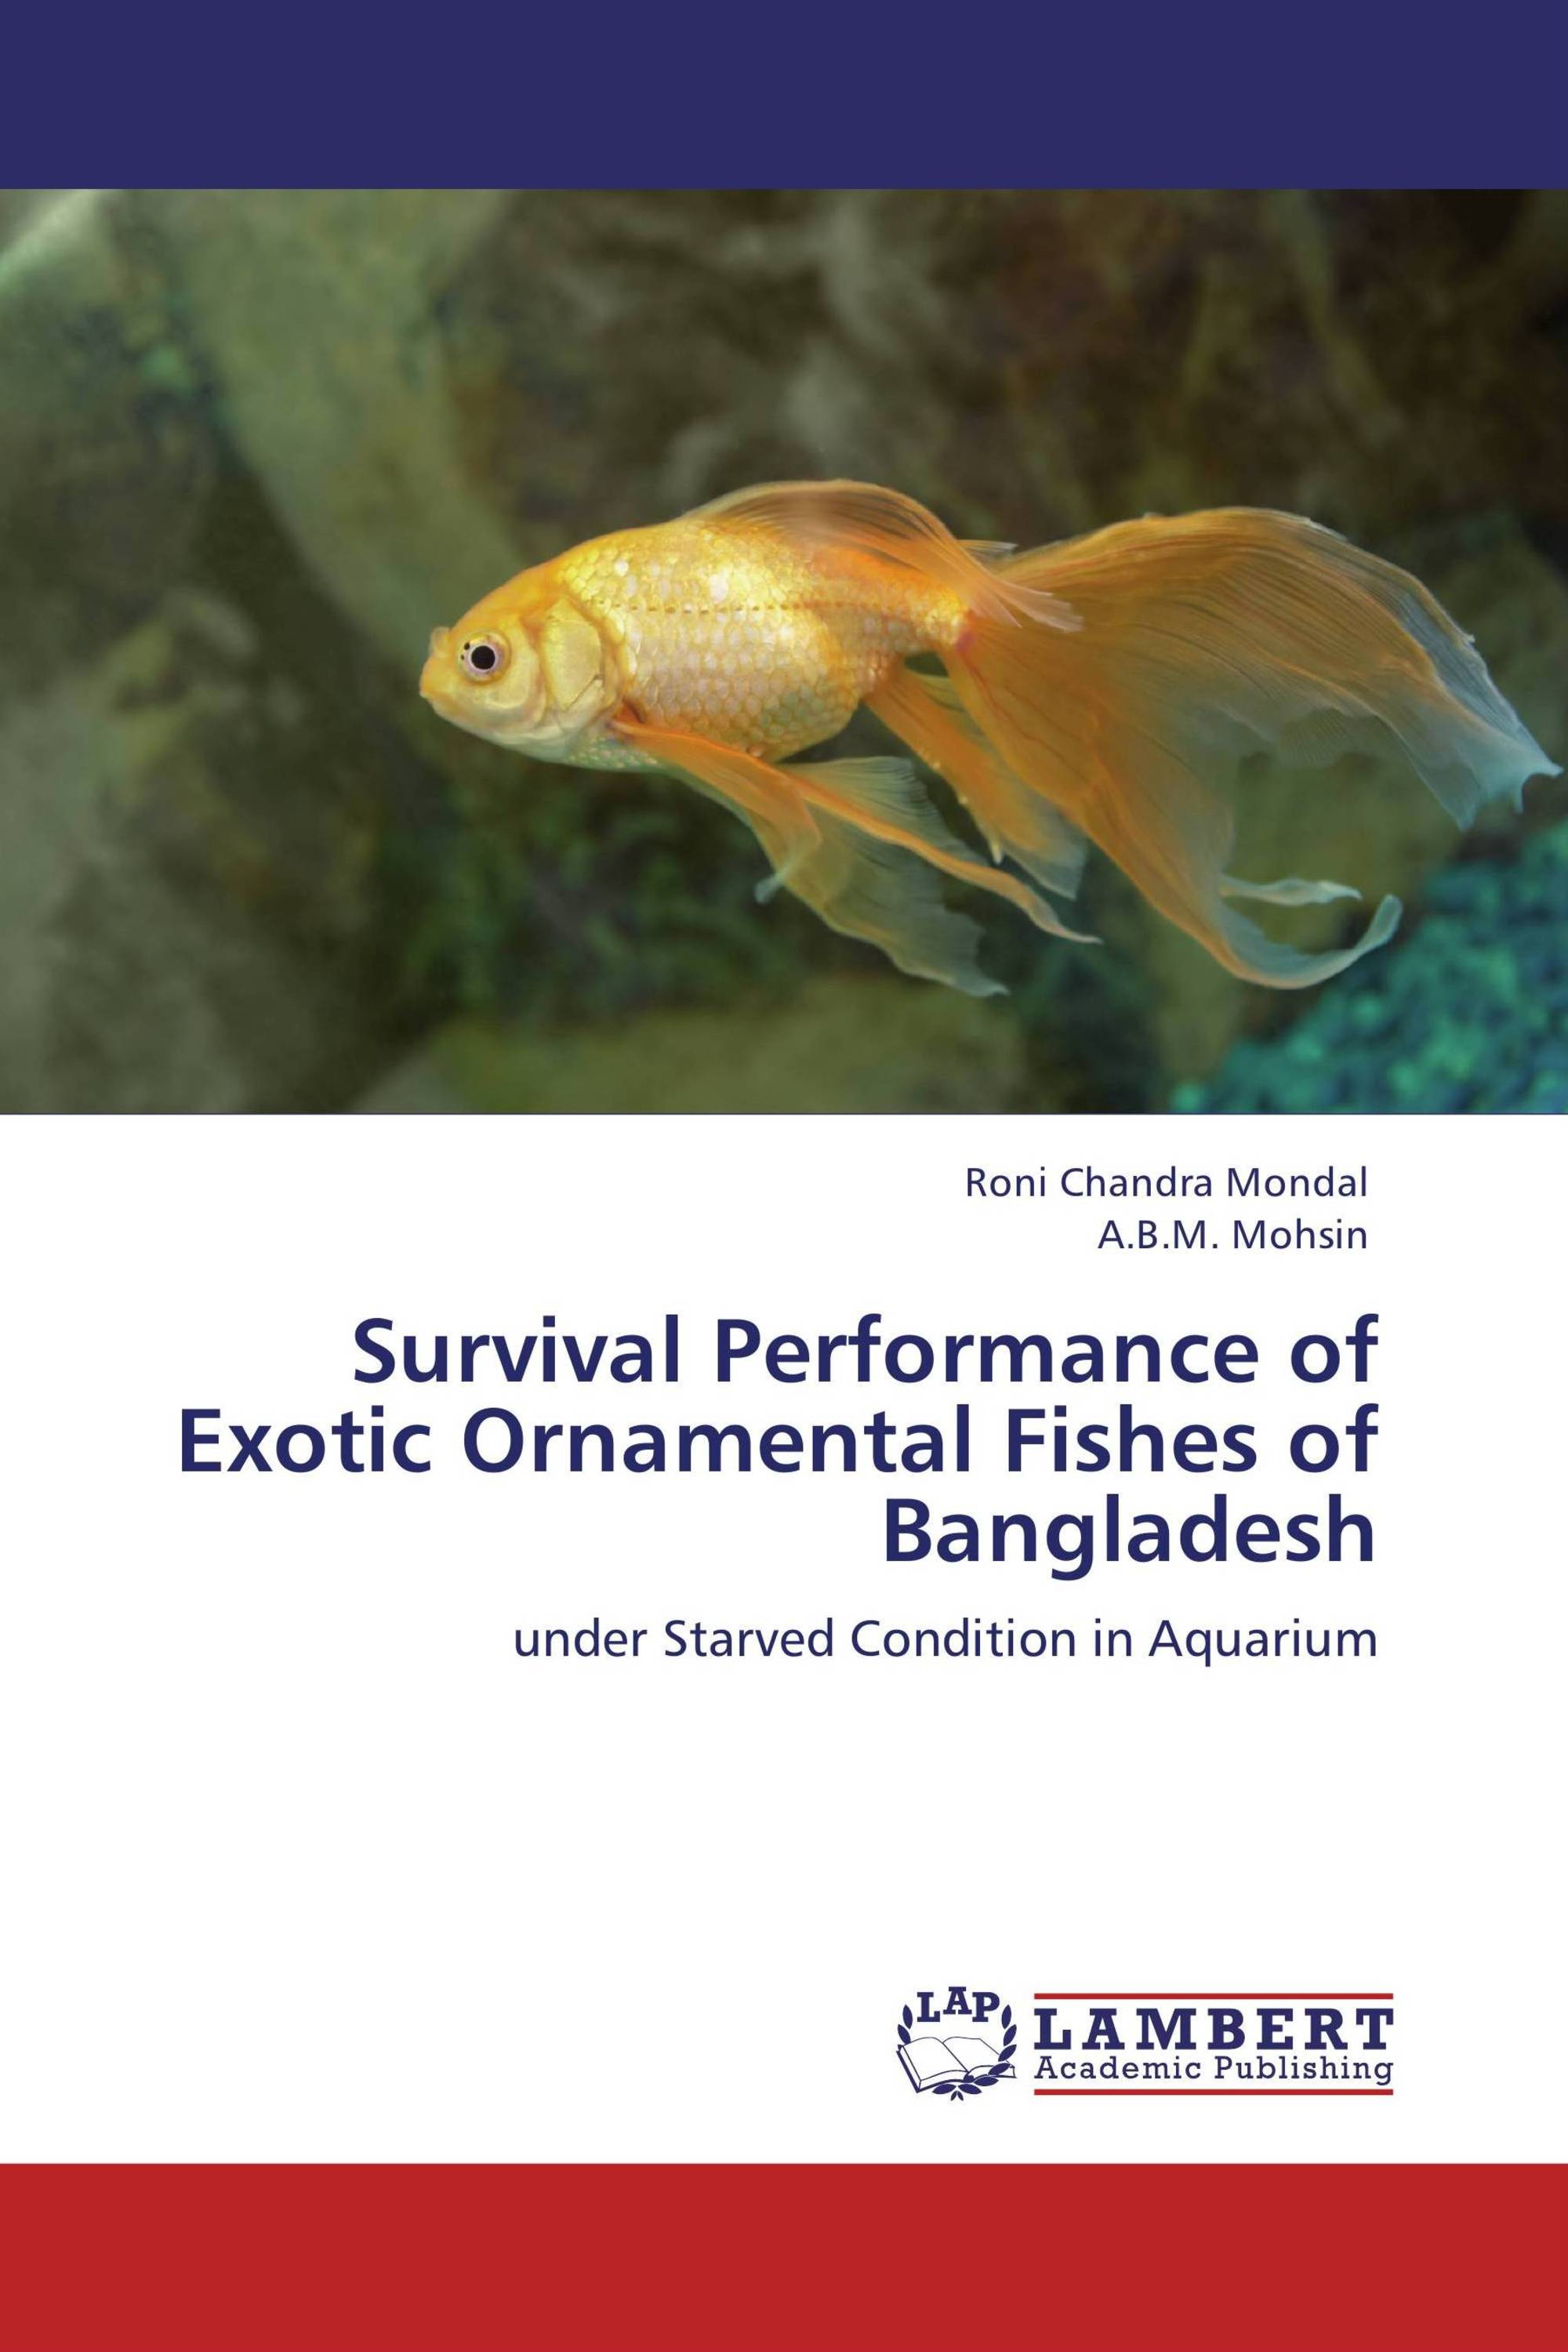 Survival Performance of Exotic Ornamental Fishes of Bangladesh